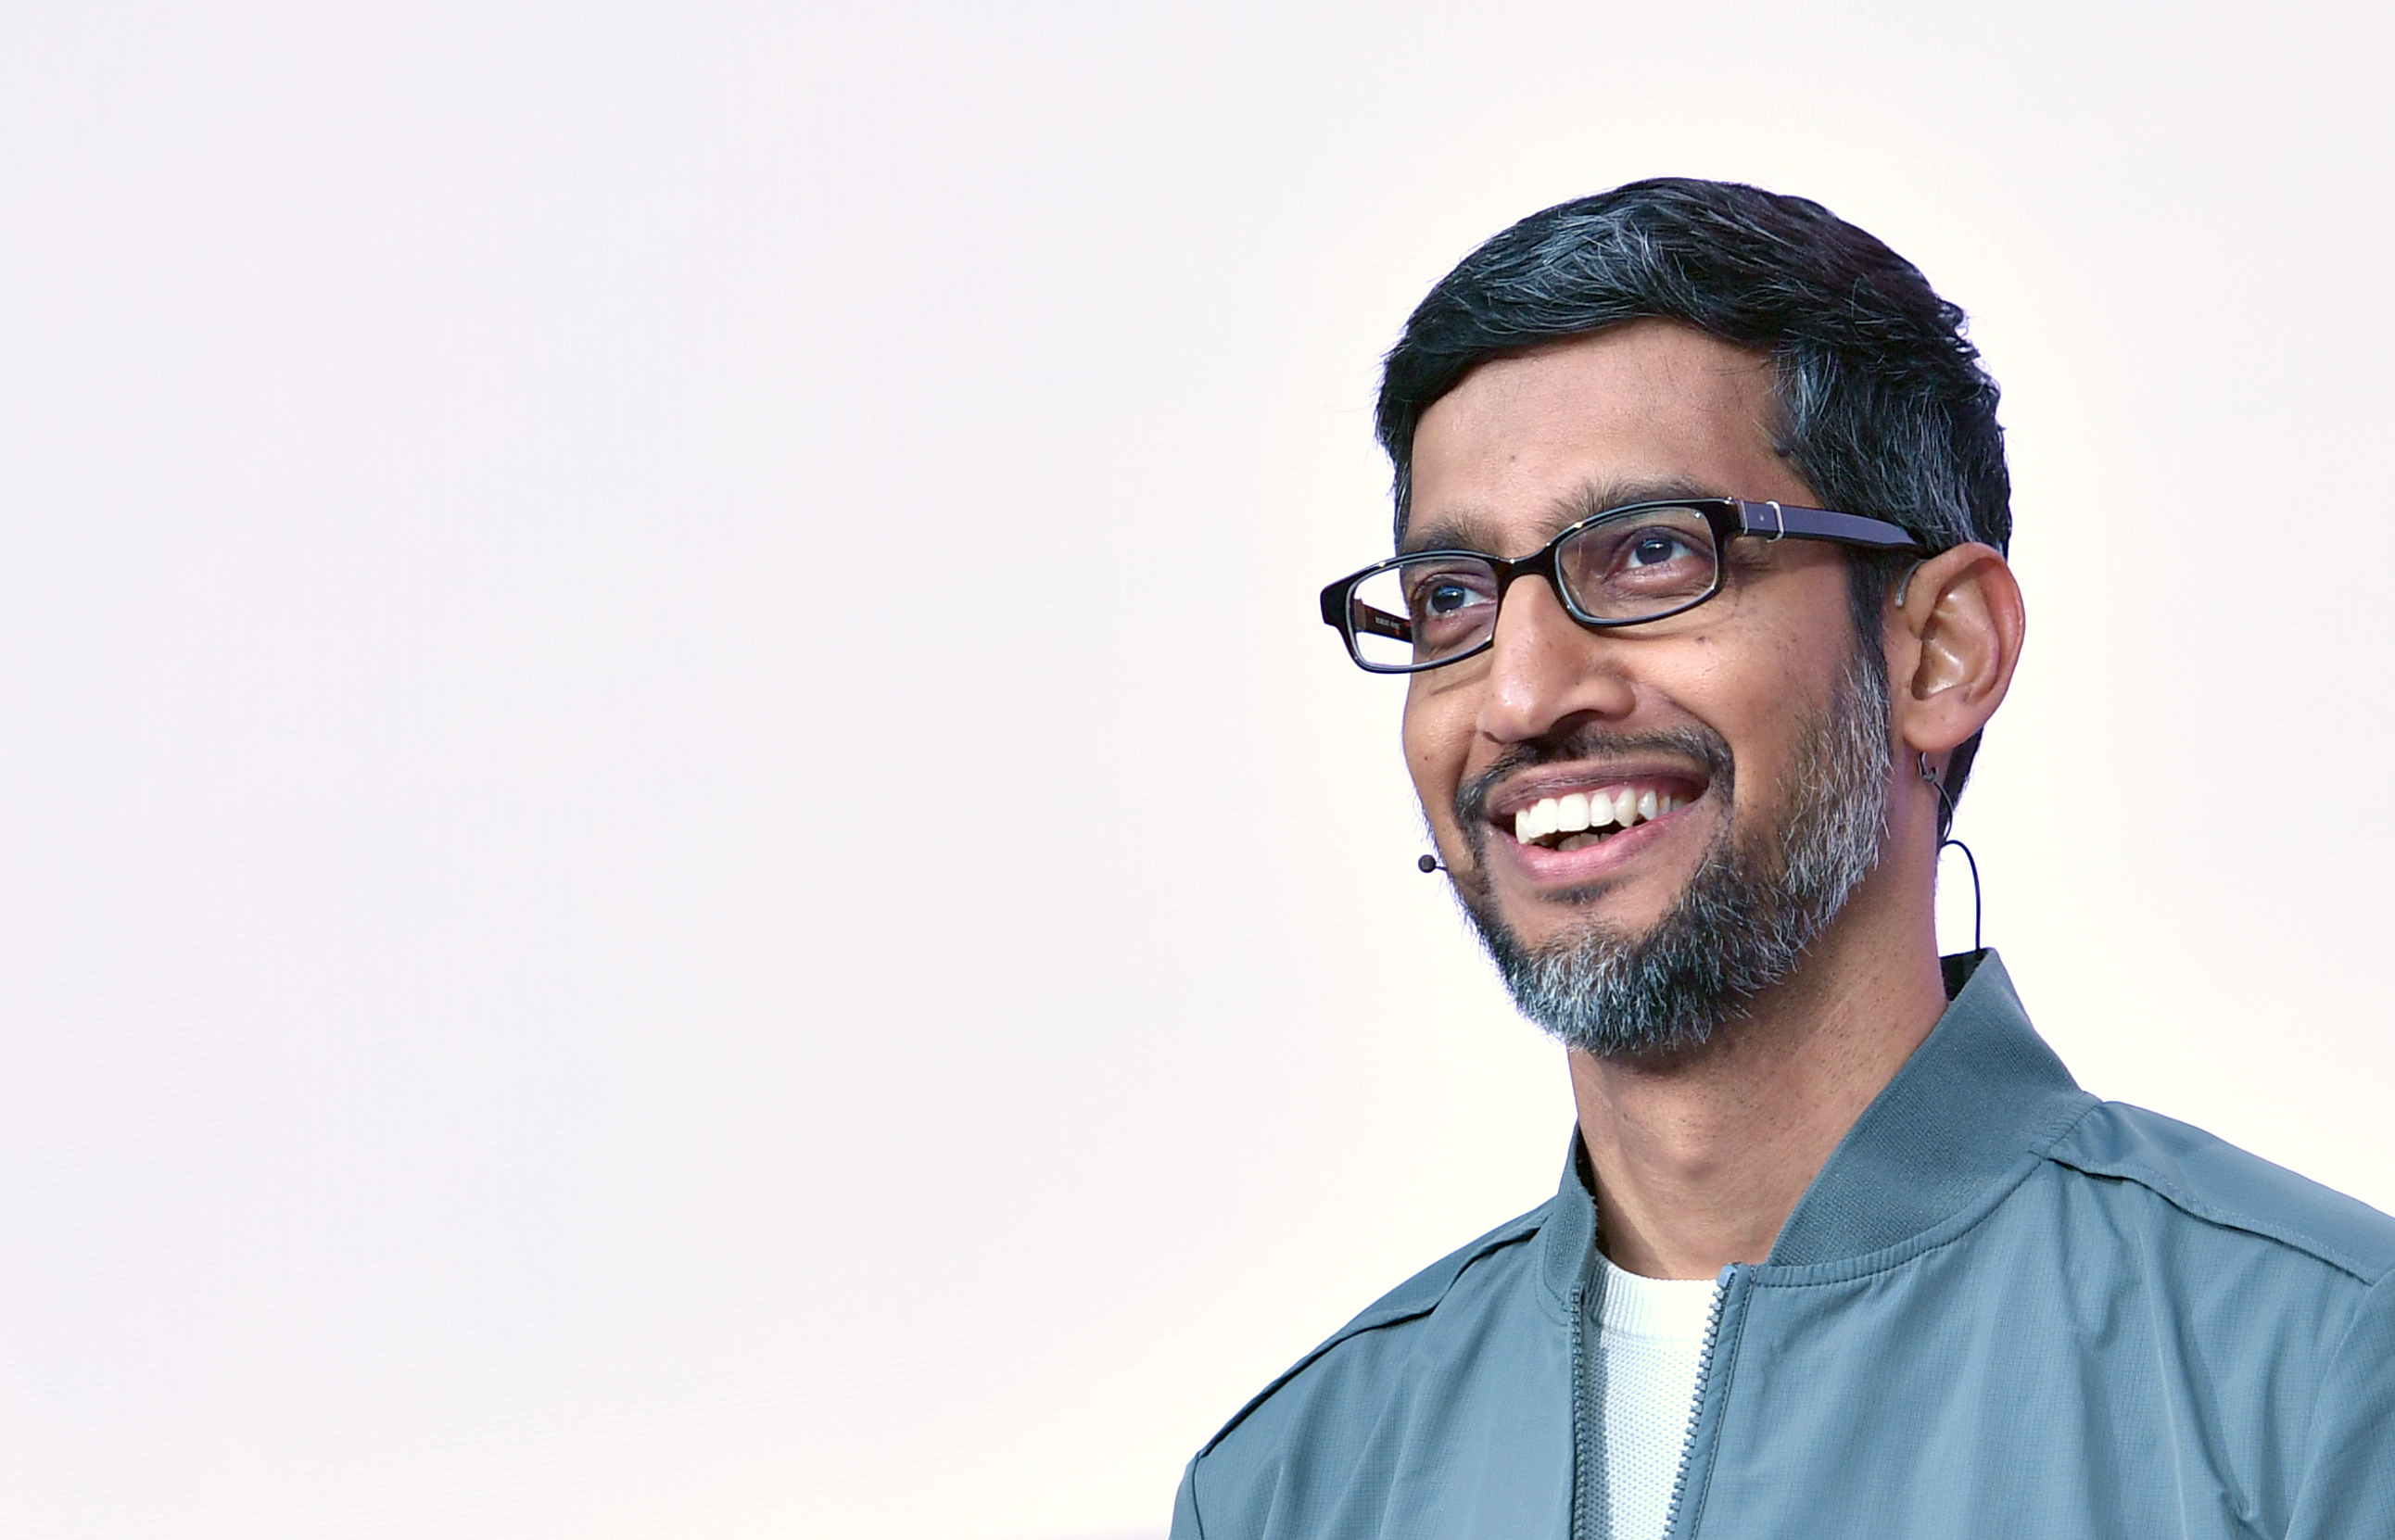 Google owner Alphabet is now worth $1 trillion